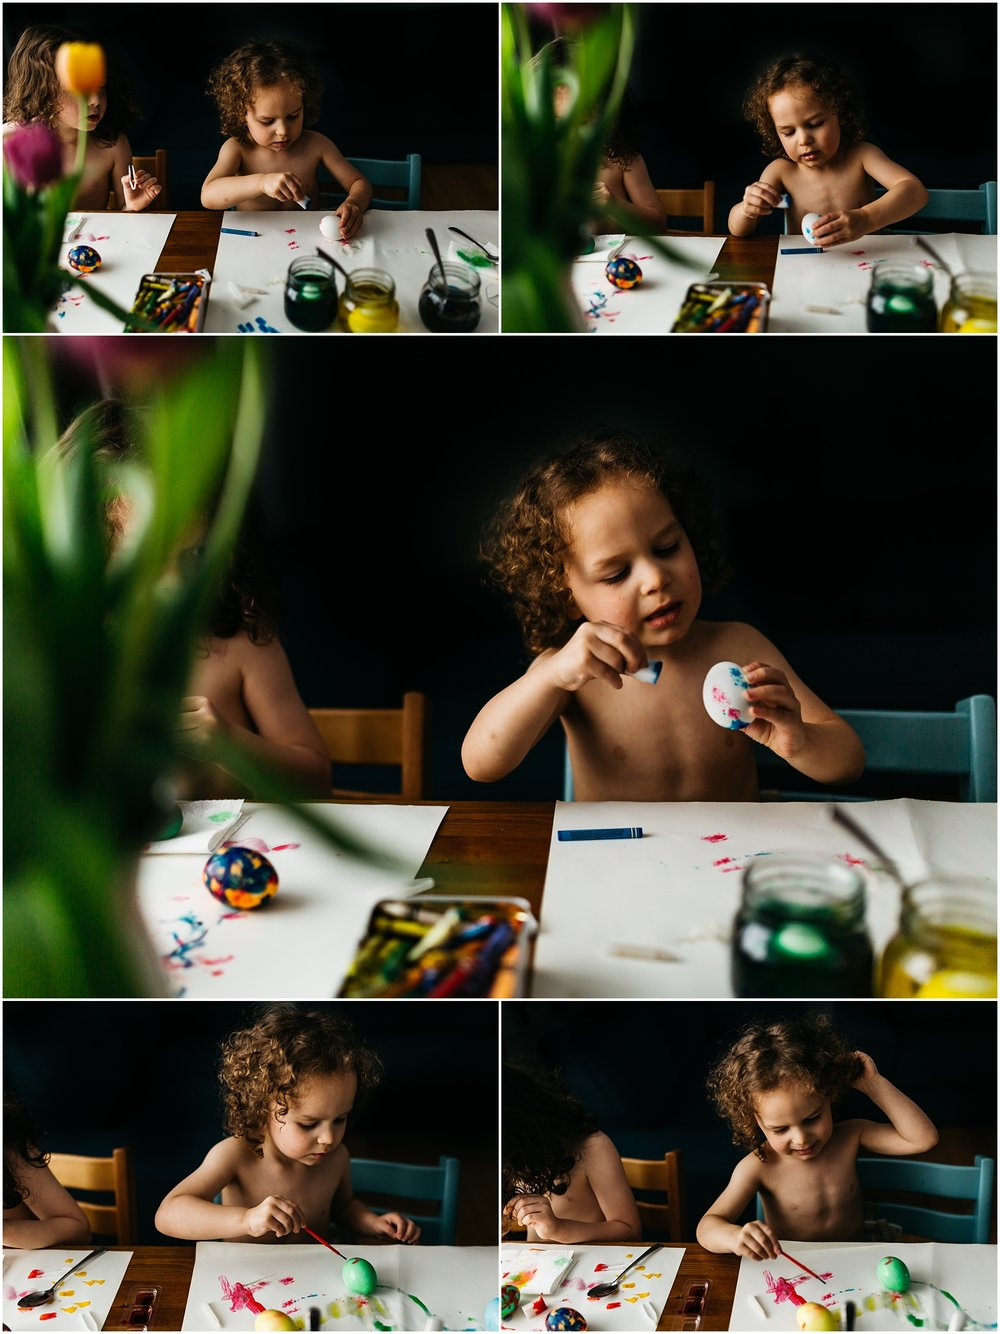 Easter Egg Painting - Edmonton Photographer - Edmonton Family Photographer -  Easter Eggs - Easter 2018 - Crayons on Easter Eggs - Edmonton Documentary Photographer - Family Photography - Documentary Photography - Tulips - Stokke Tripp Trapp - Tulips - Spring Flowers - Paas Easter Kits